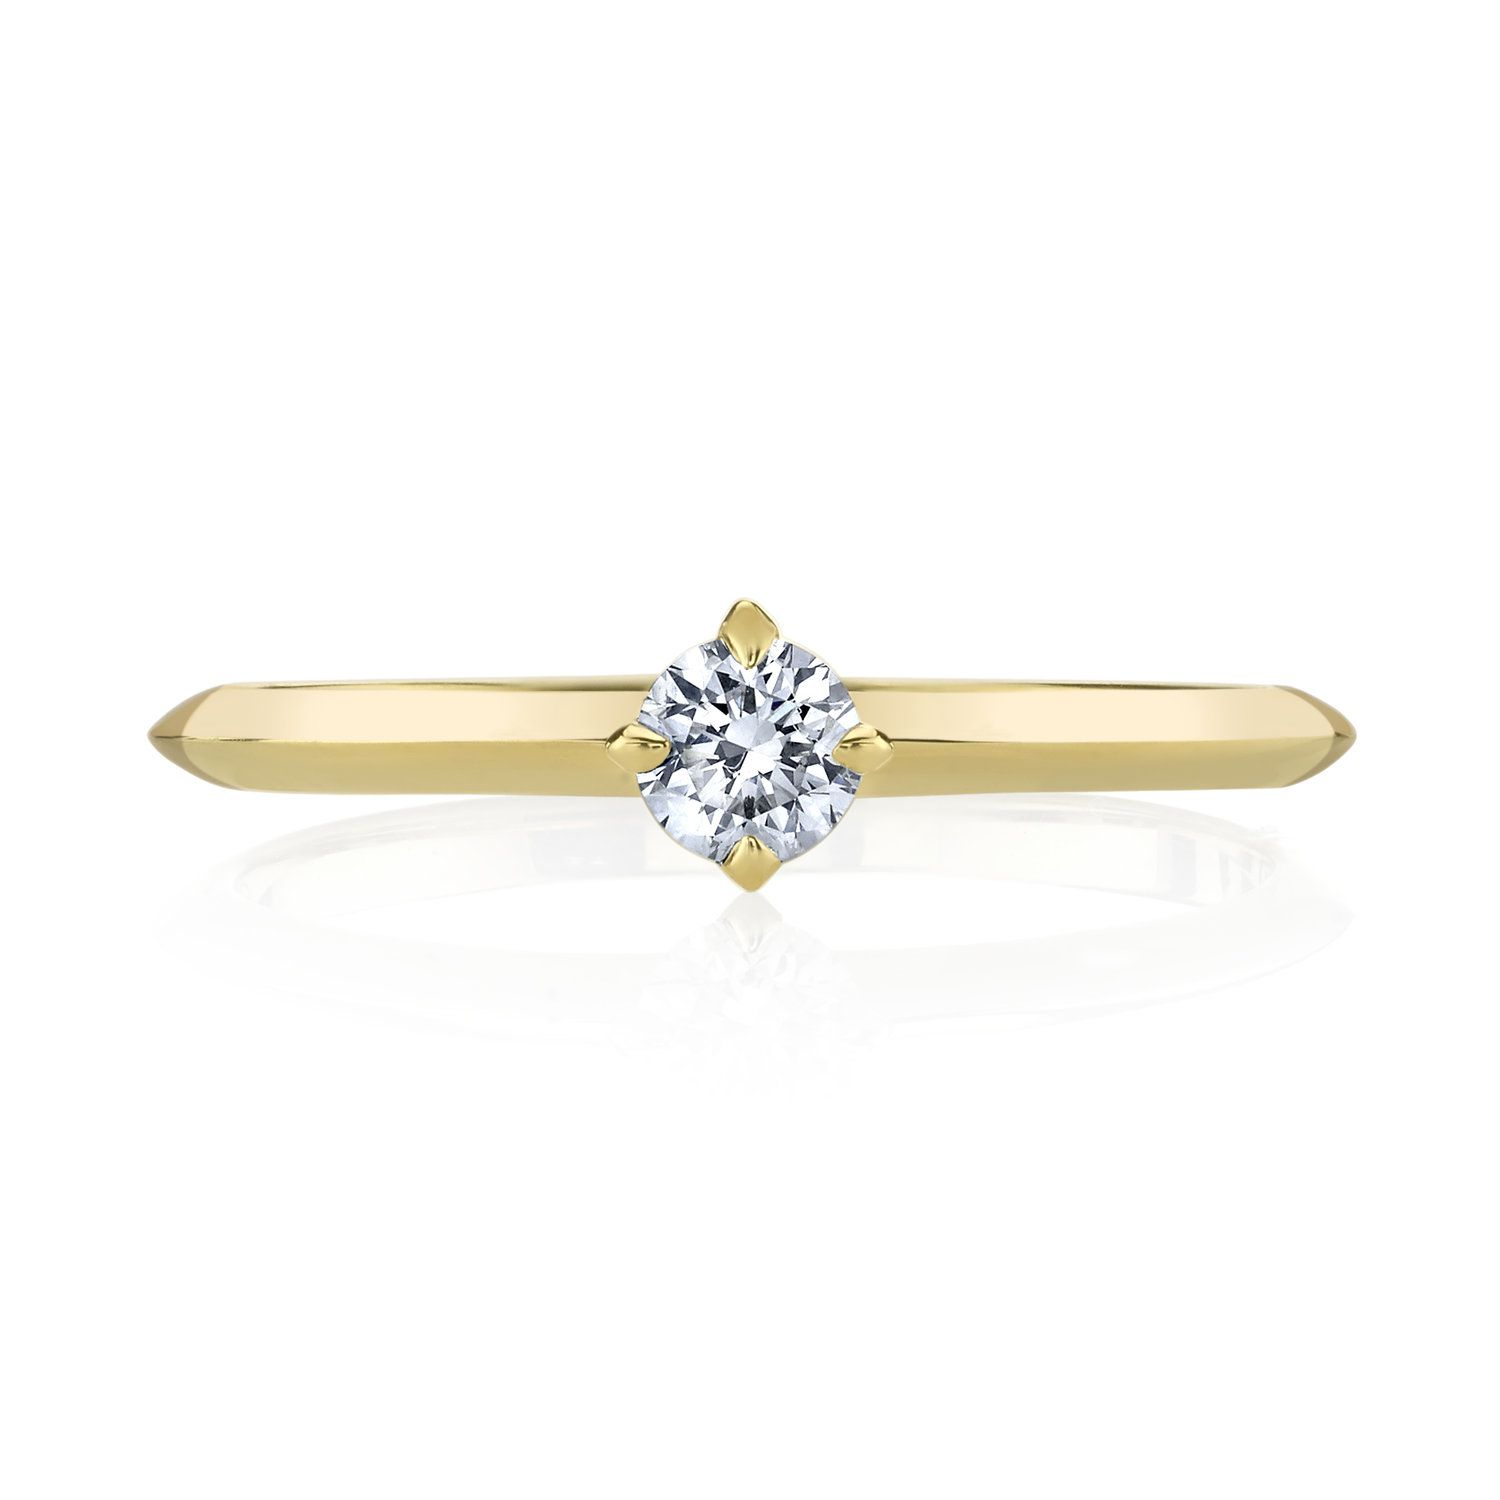 Simple solitaire diamond engagement ring